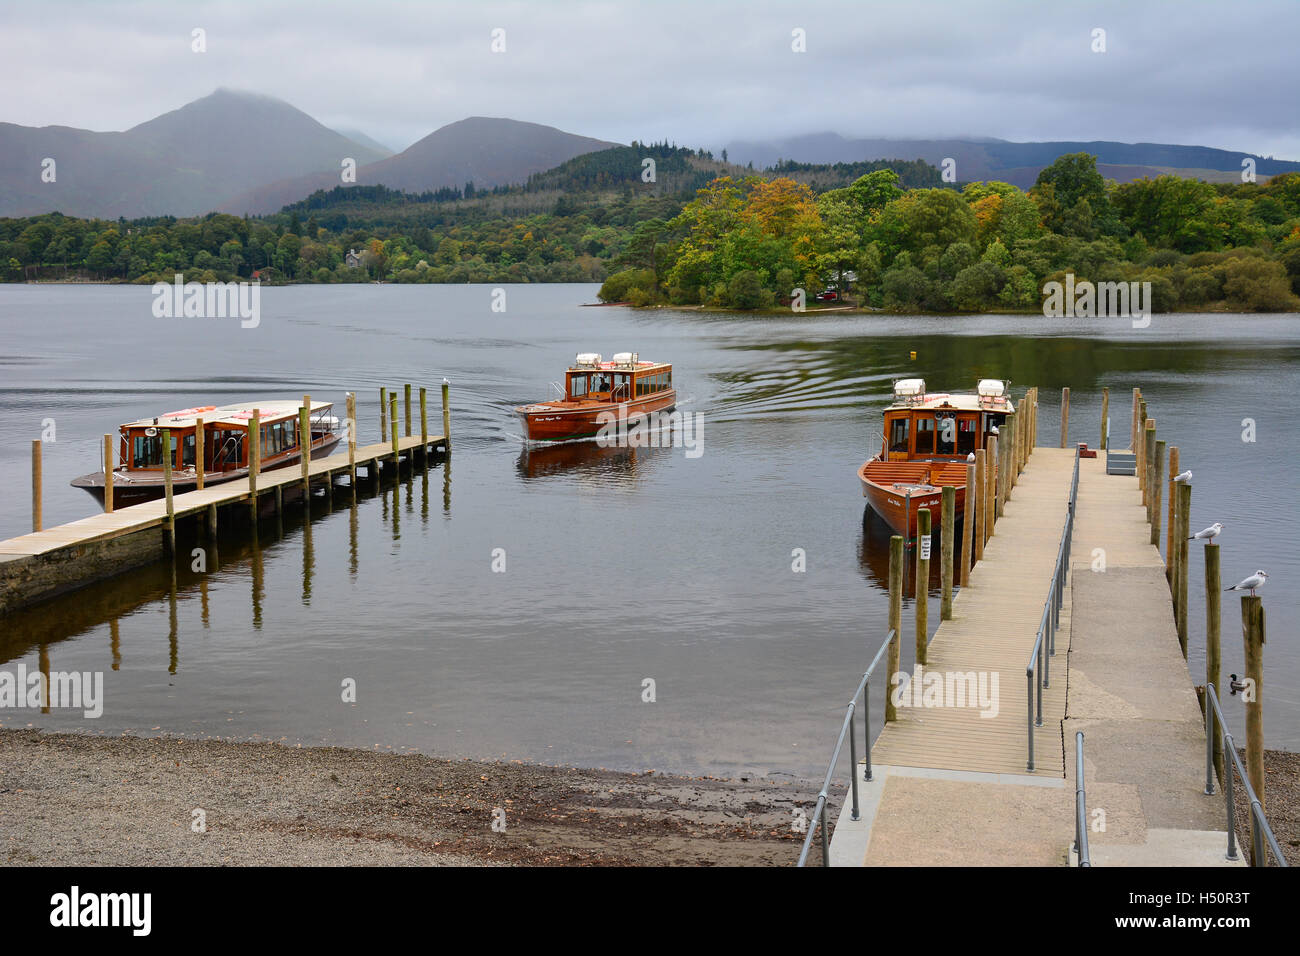 Keswick launches landing at the jetties on Derwentwater, UK - Stock Image